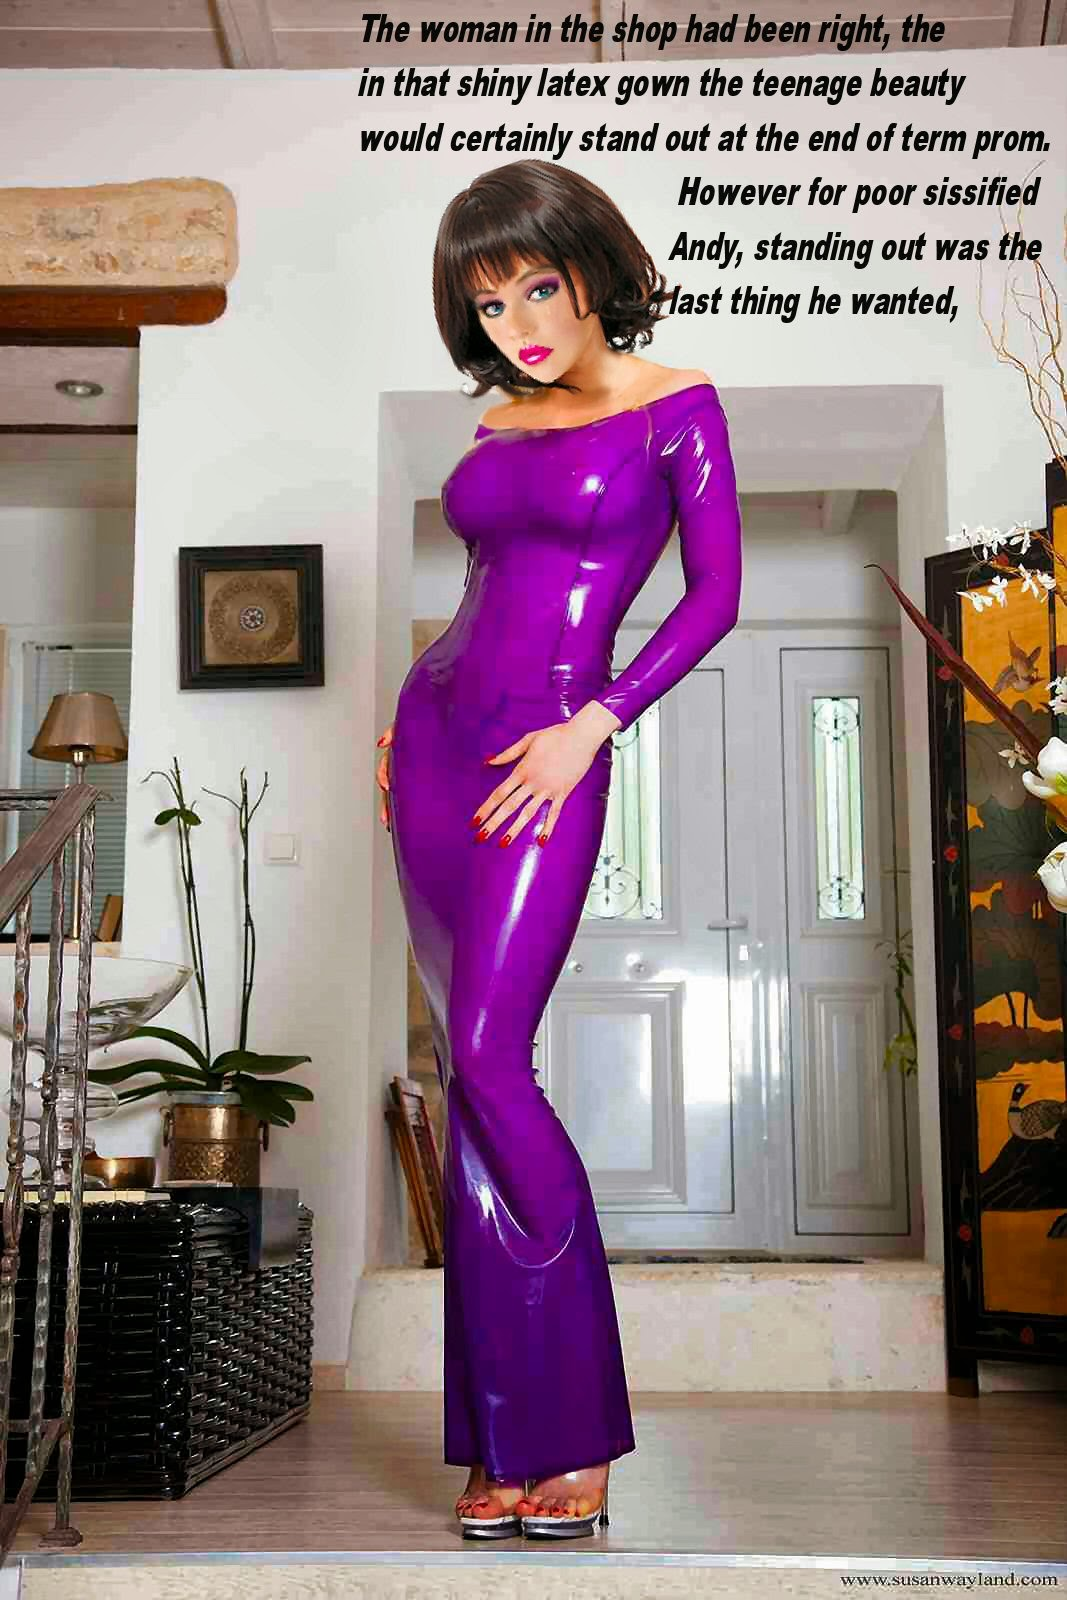 some of my feminization captions